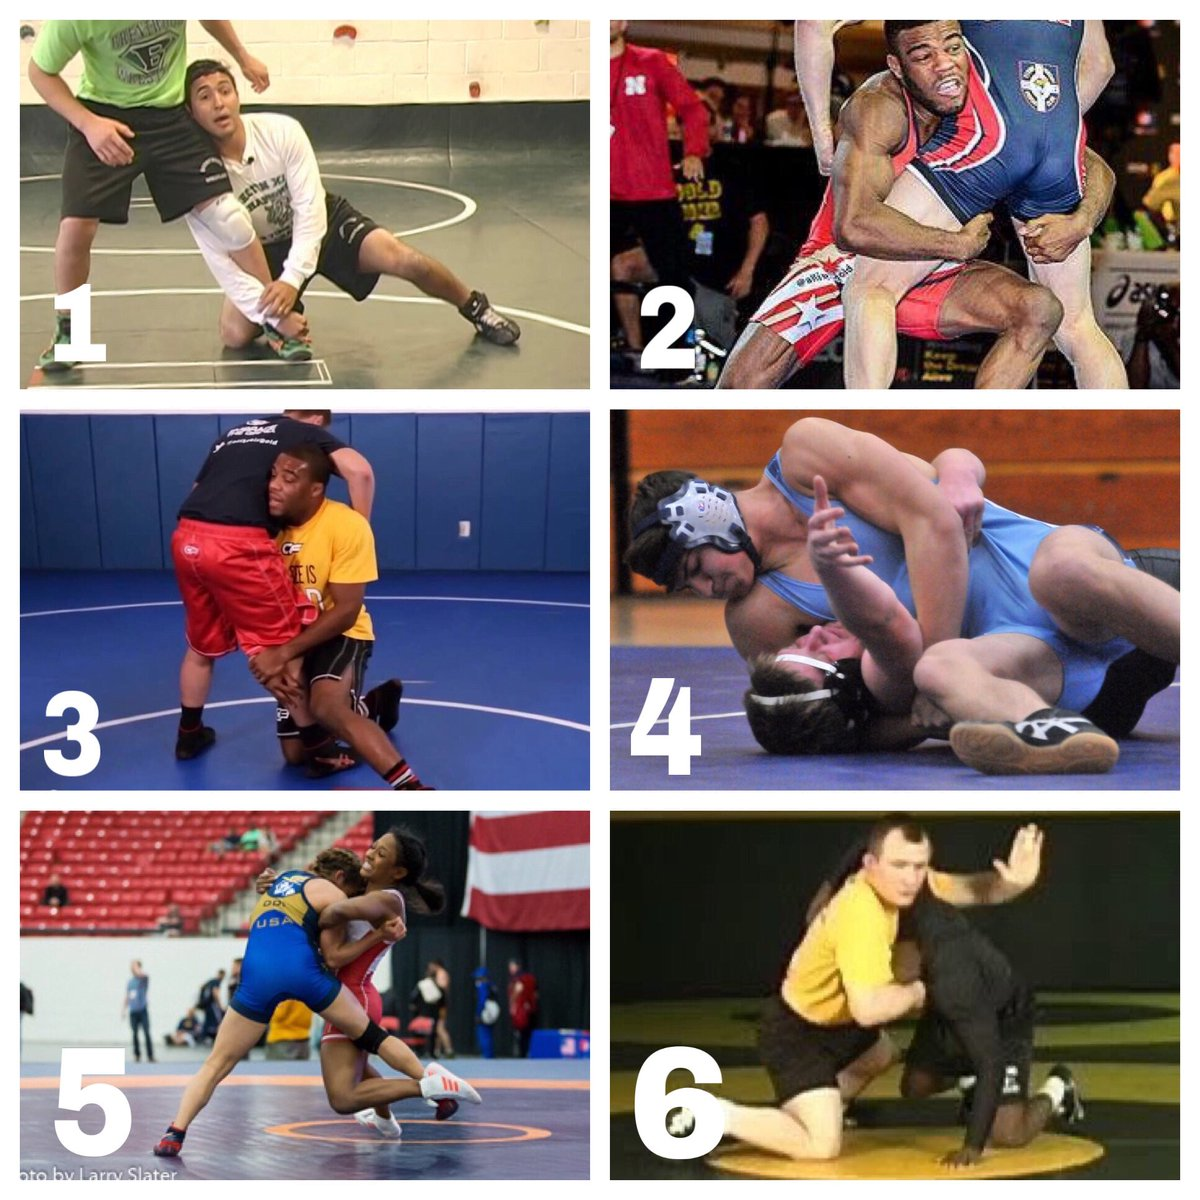 You can only choose 2! @FloWrestling @MatScoutWillie @jasonmbryant @MarkSBader